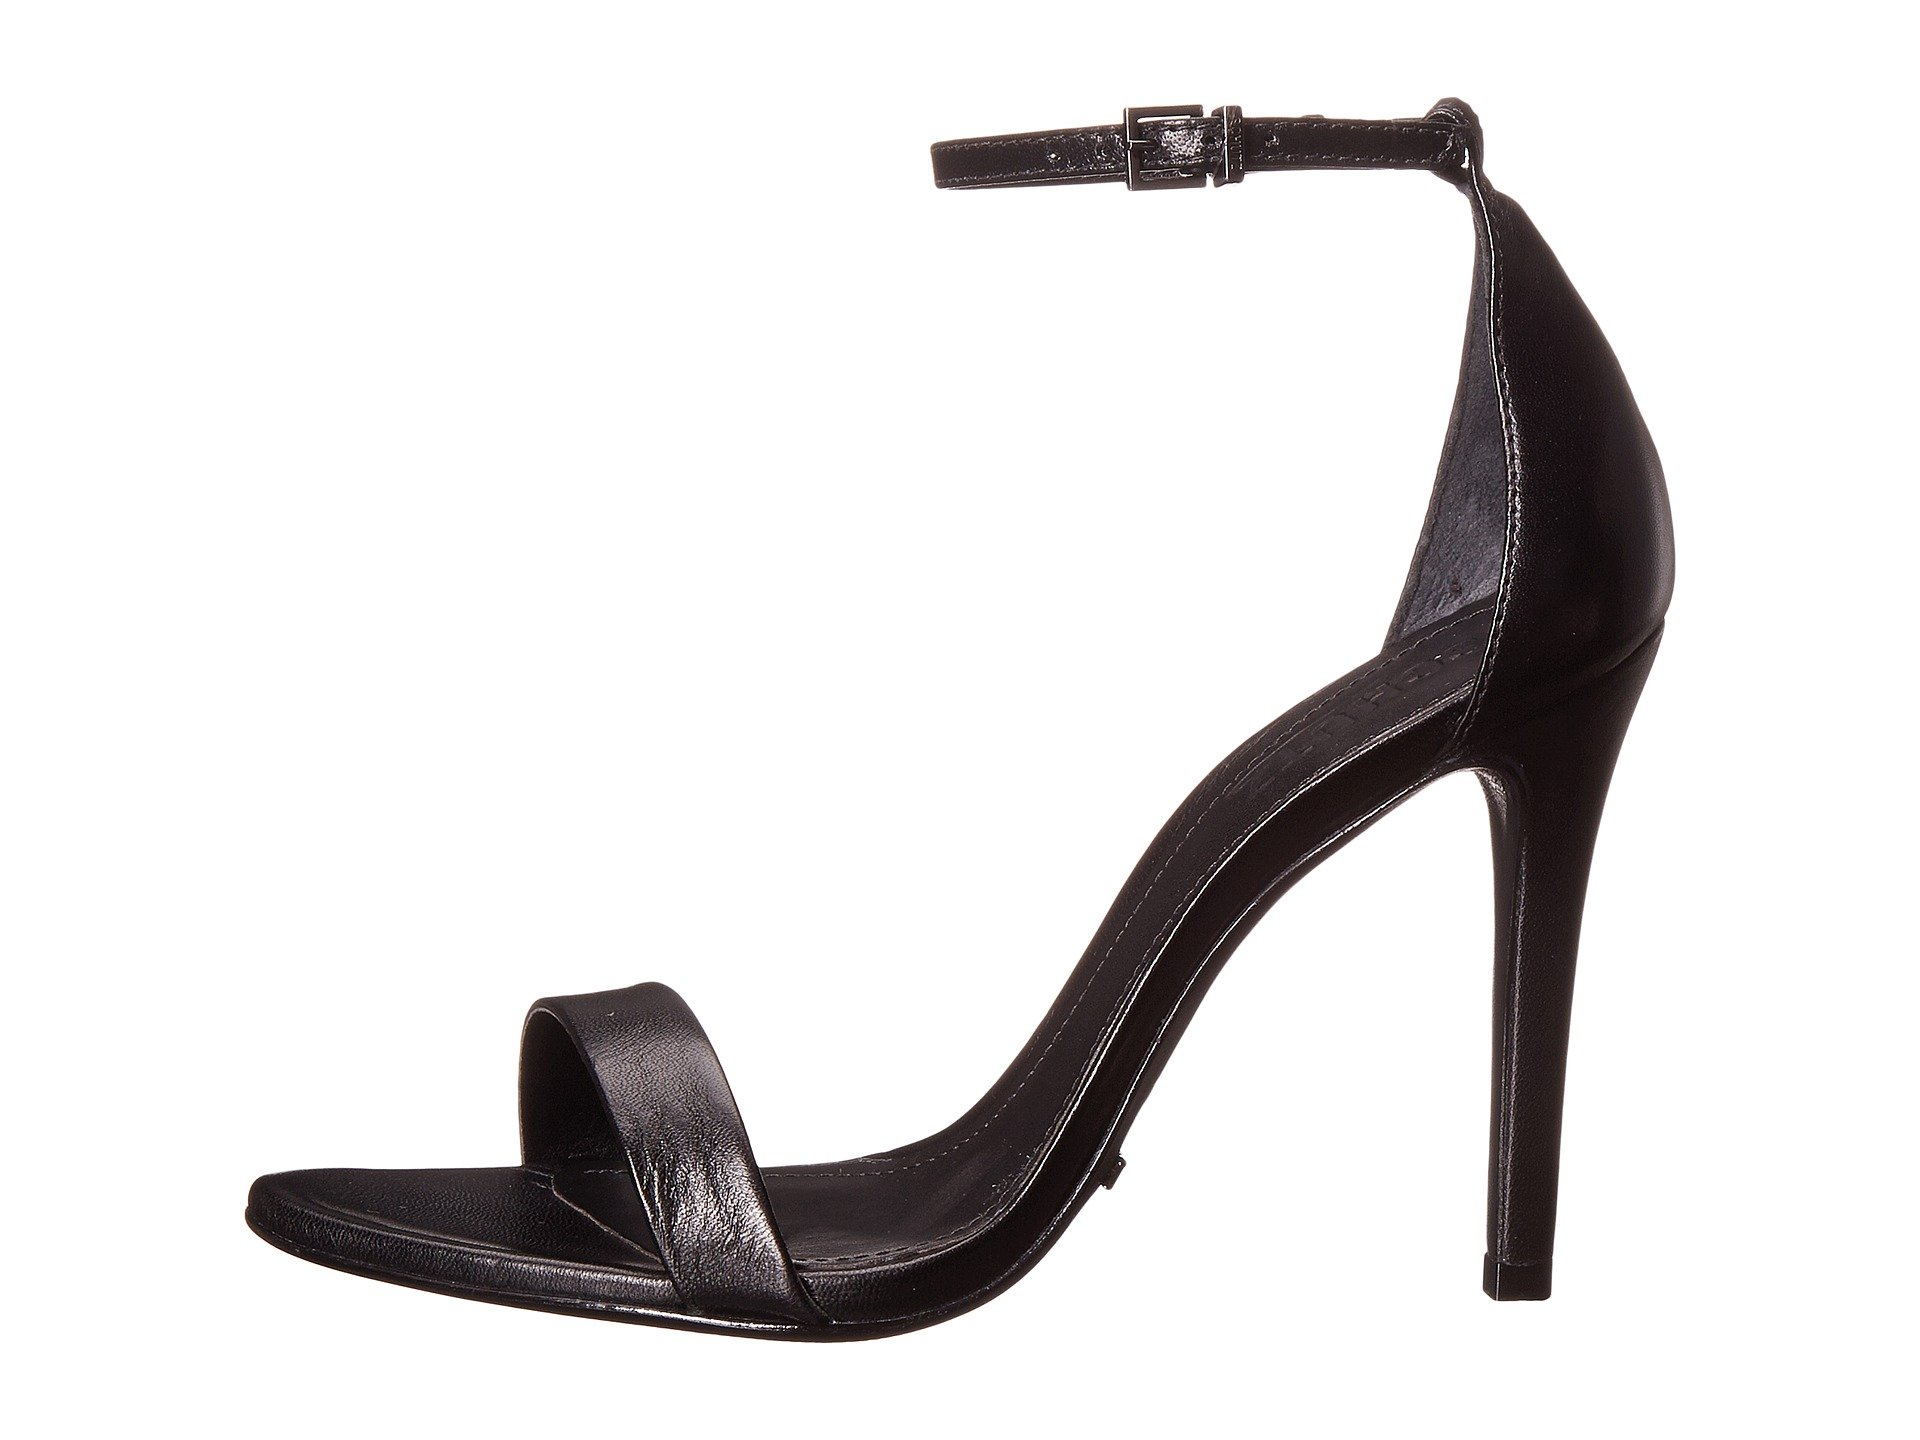 Schutz Women's Cadey-Lee Black 1 9 M US by SCHUTZ (Image #6)